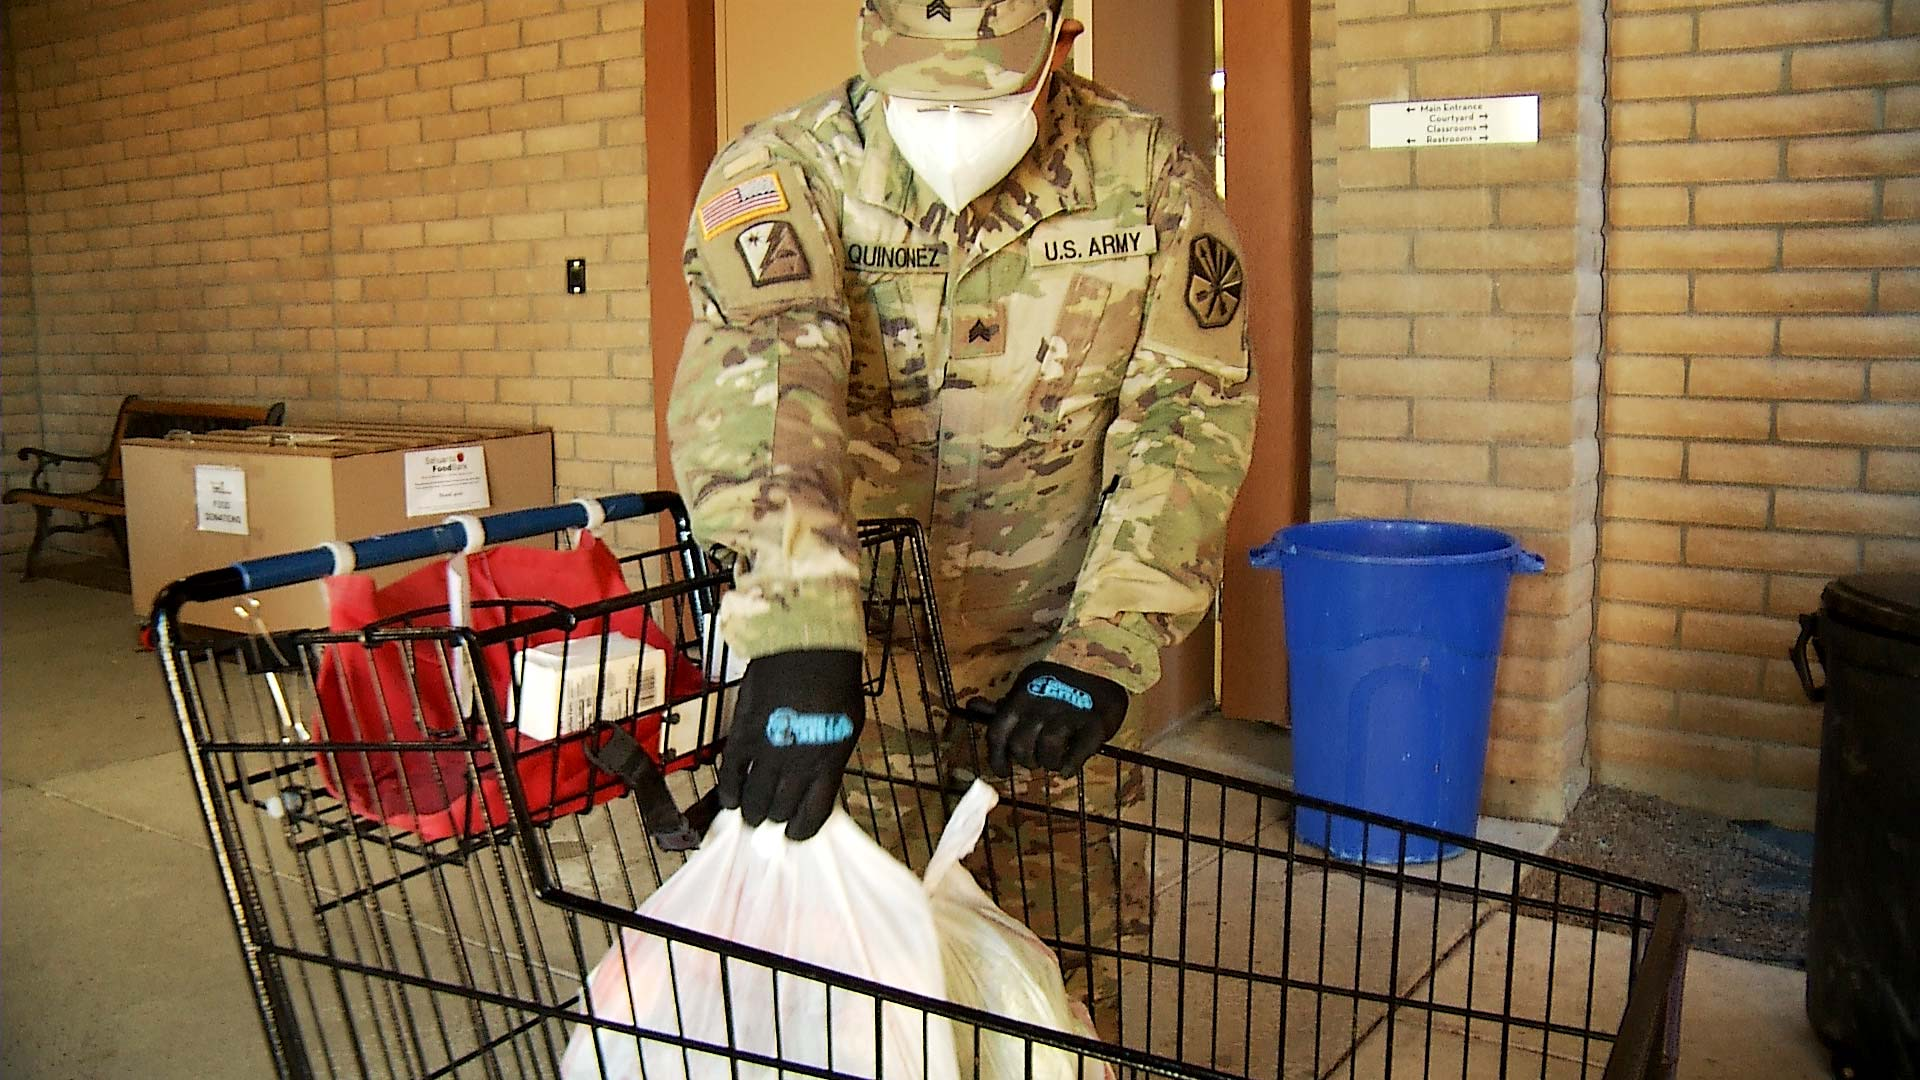 A guardsman with the Arizona National Guard loads groceries in a cart at a food bank in Sahuarita on Feb. 11, 2021.